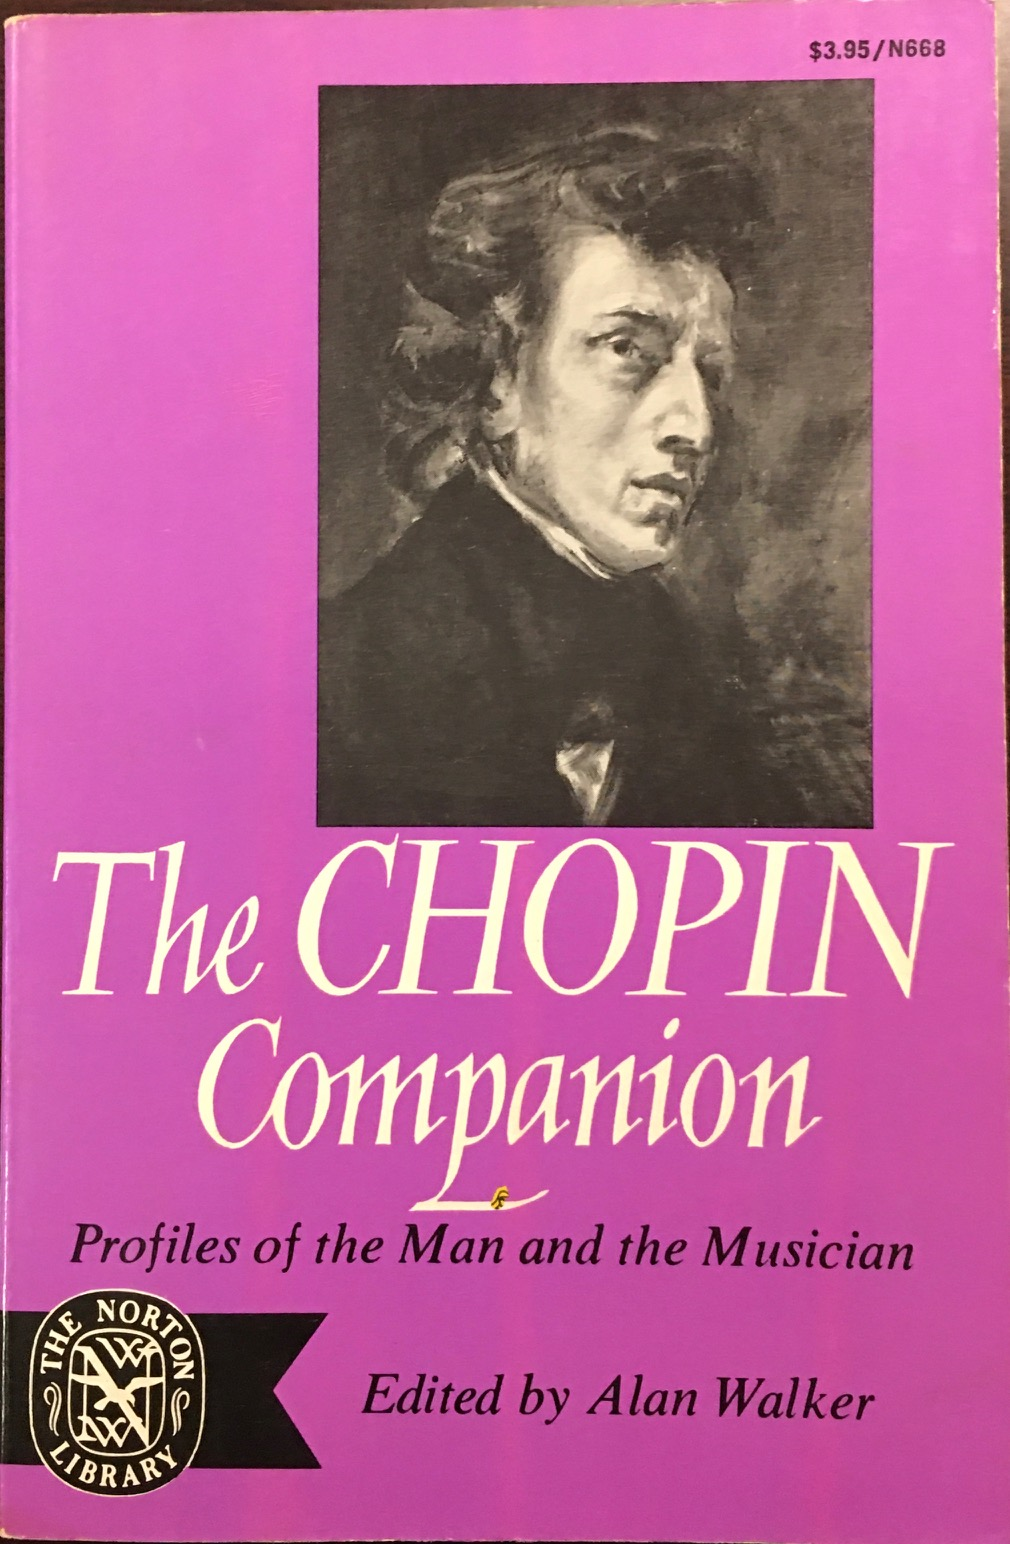 Image for Chopin Companion: Profiles of The Man and The Musician (Norton Library, N668)